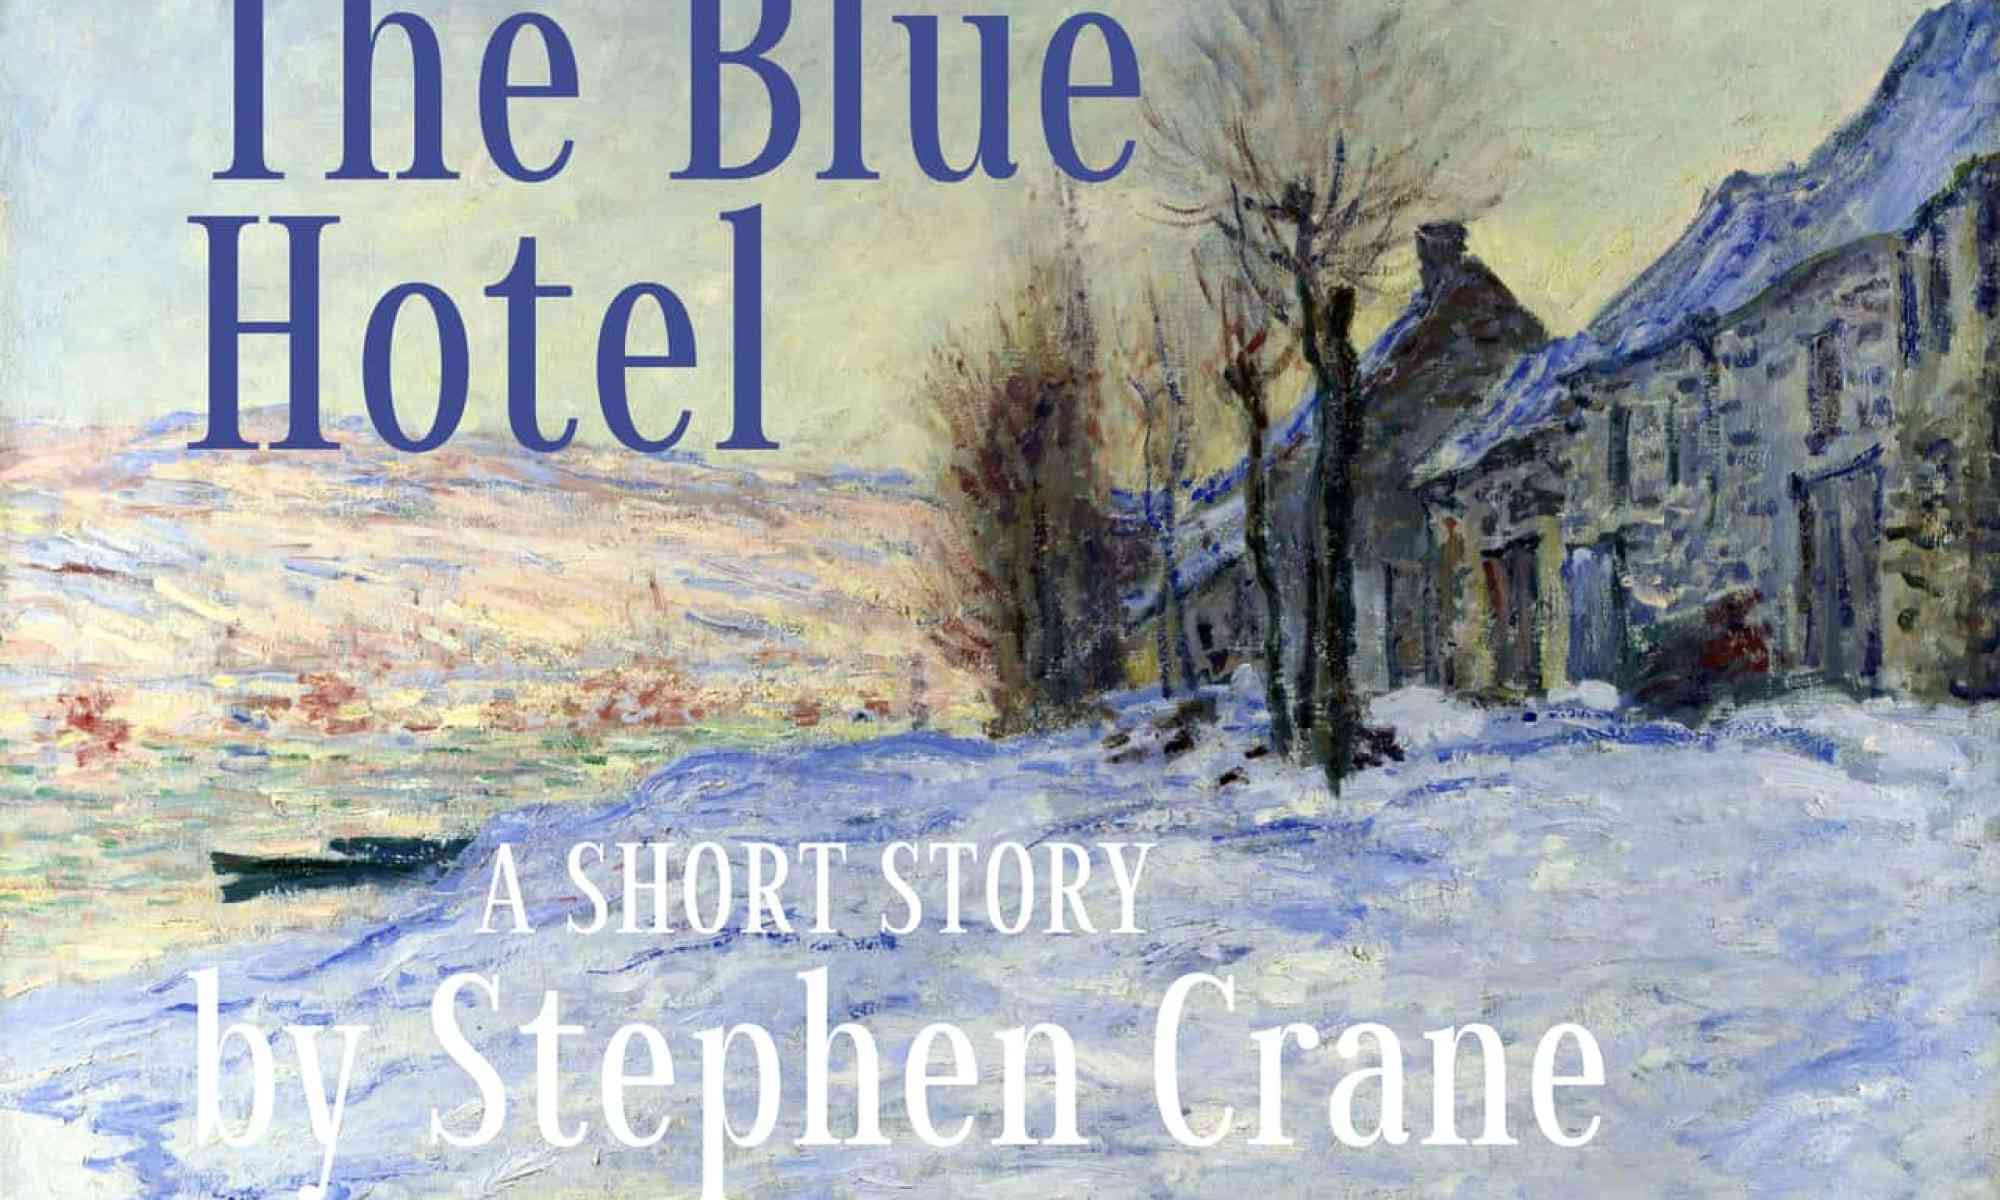 THE BLUE HOTEL stephen crane